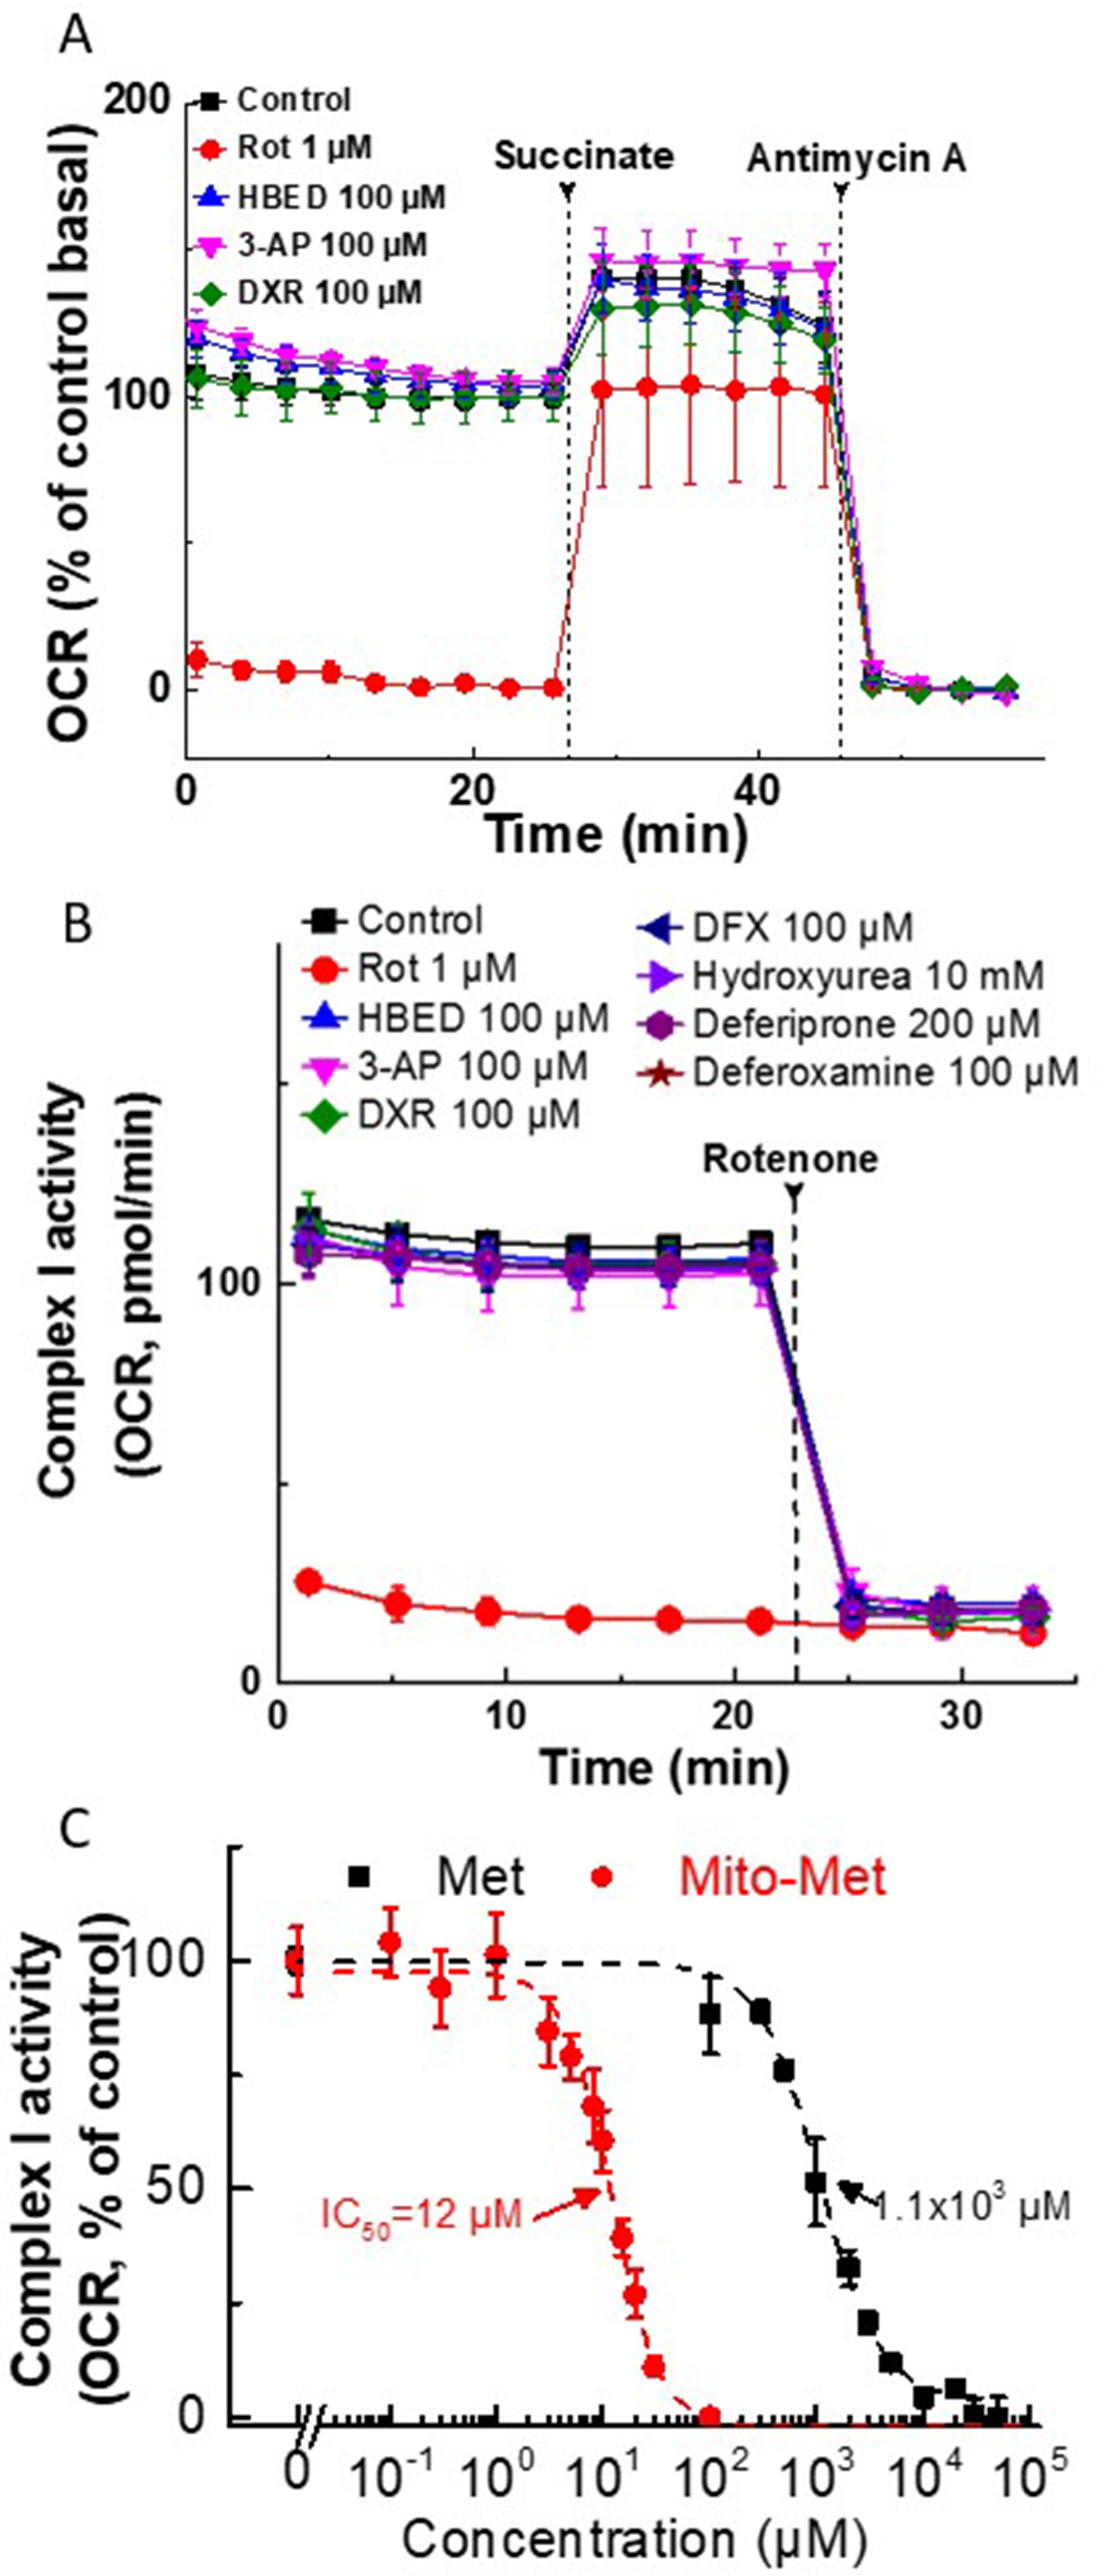 Effect of iron chelators and Met/Mito-Met on mitochondrial complex I activity in MiaPaCa-2 and MDA-MB- 231 cells.